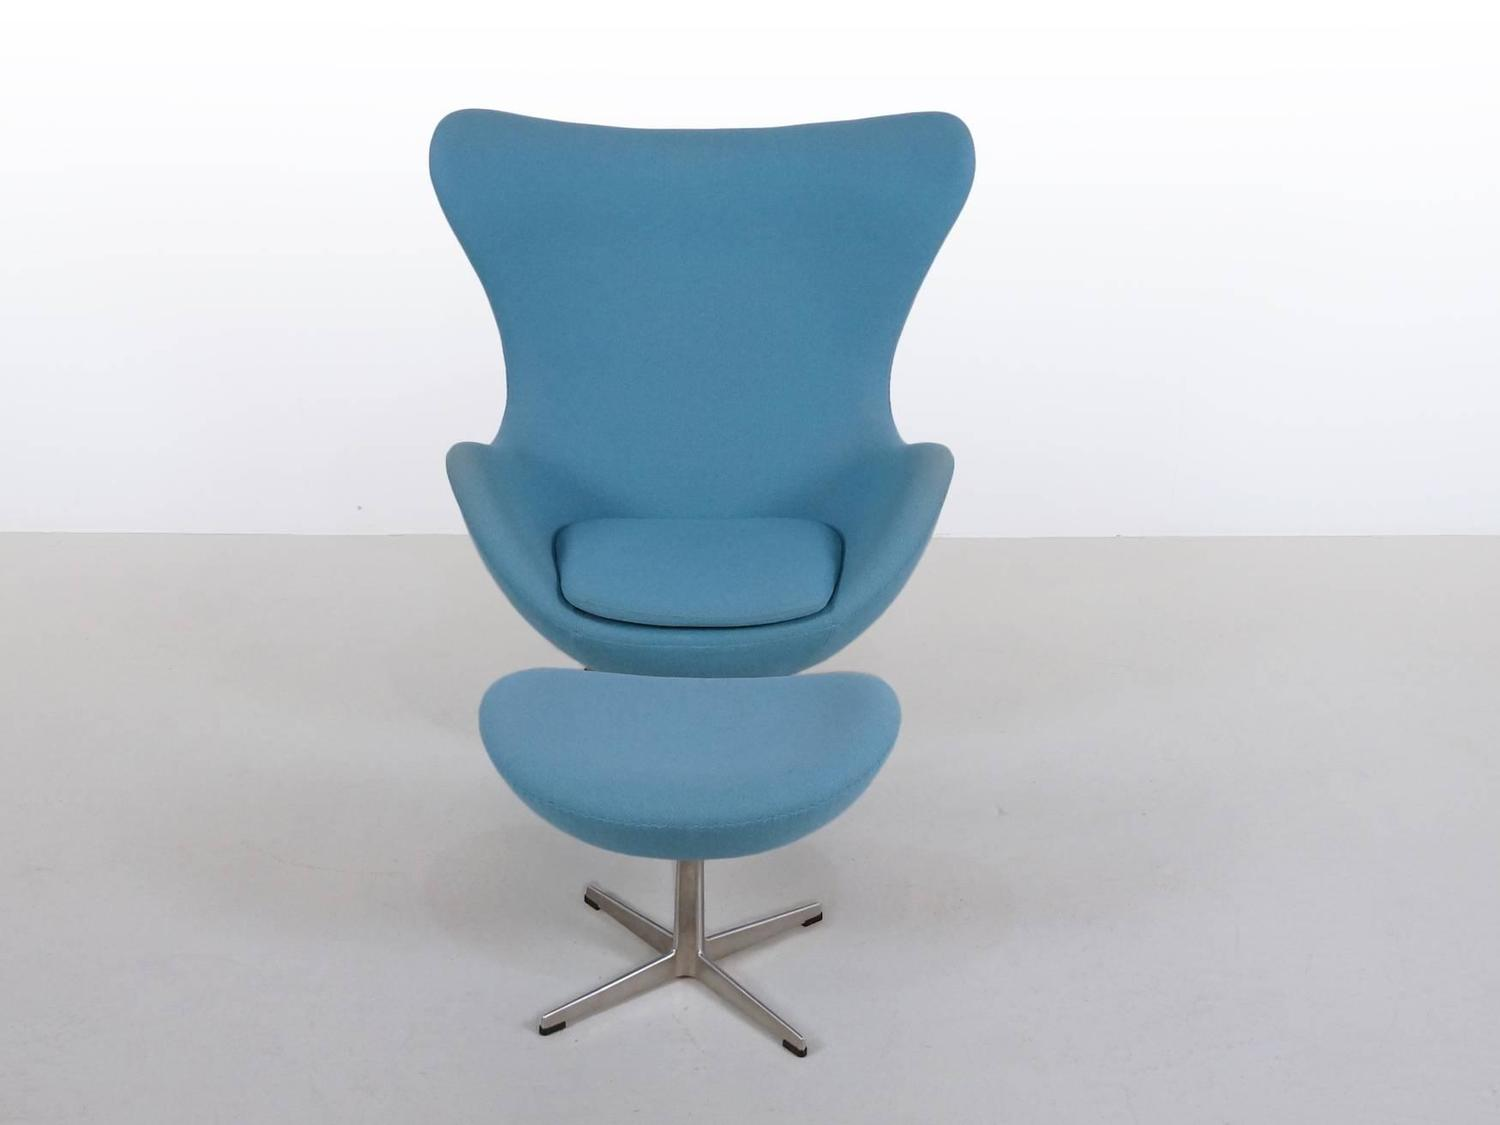 Arne Jacobsen Egg Chair Ebay Egg Chair Blue